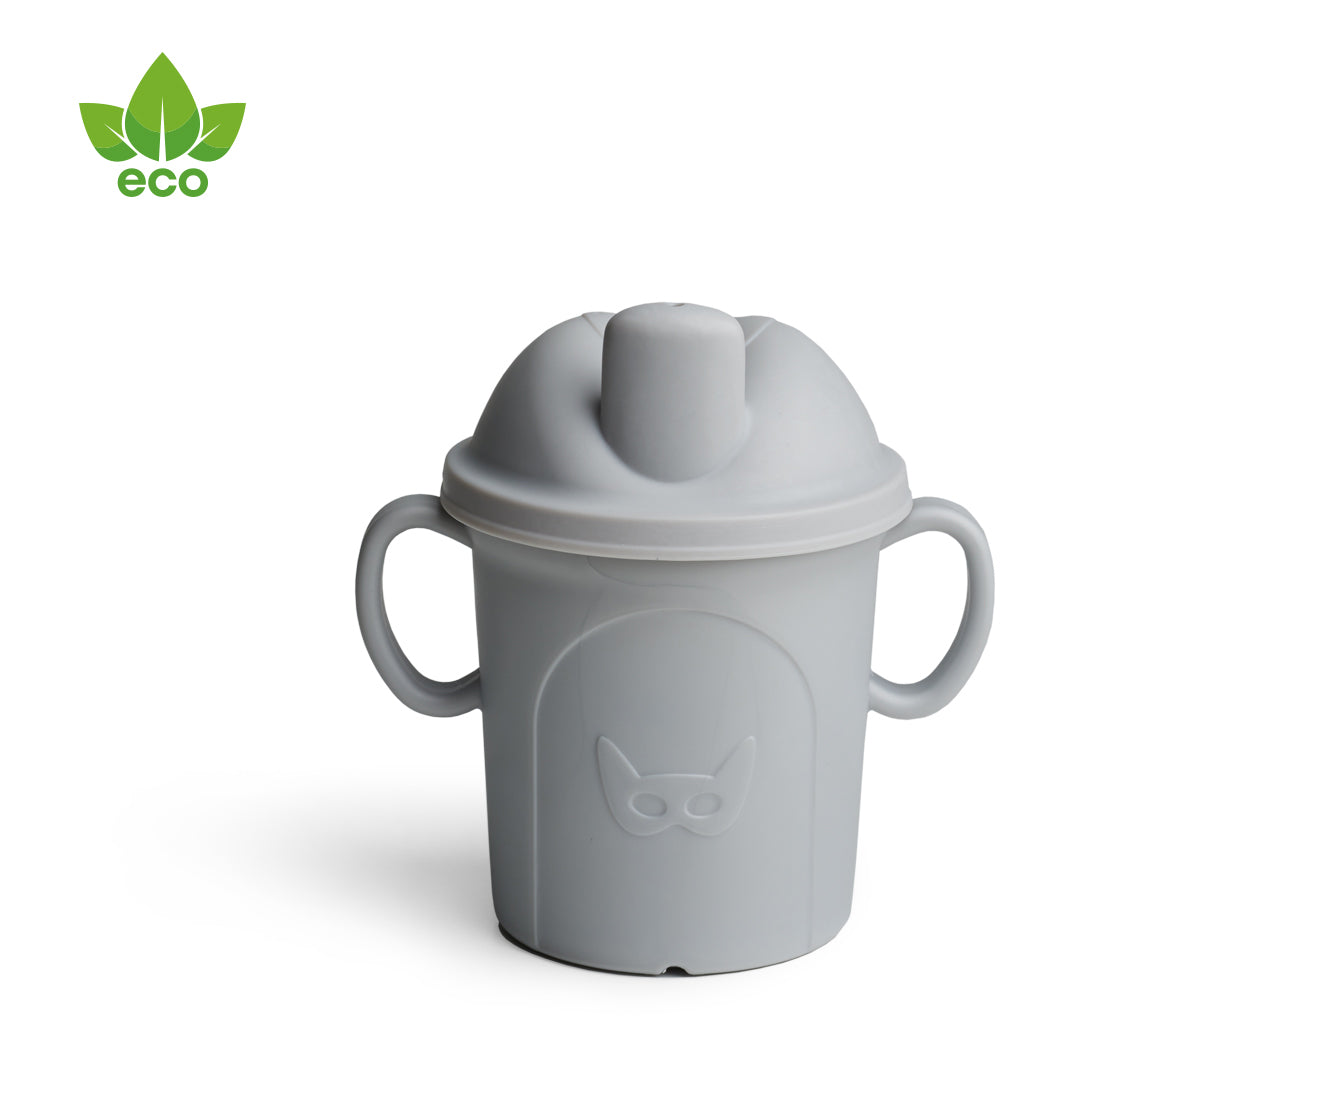 Eco Sippy Cup Mist Gray